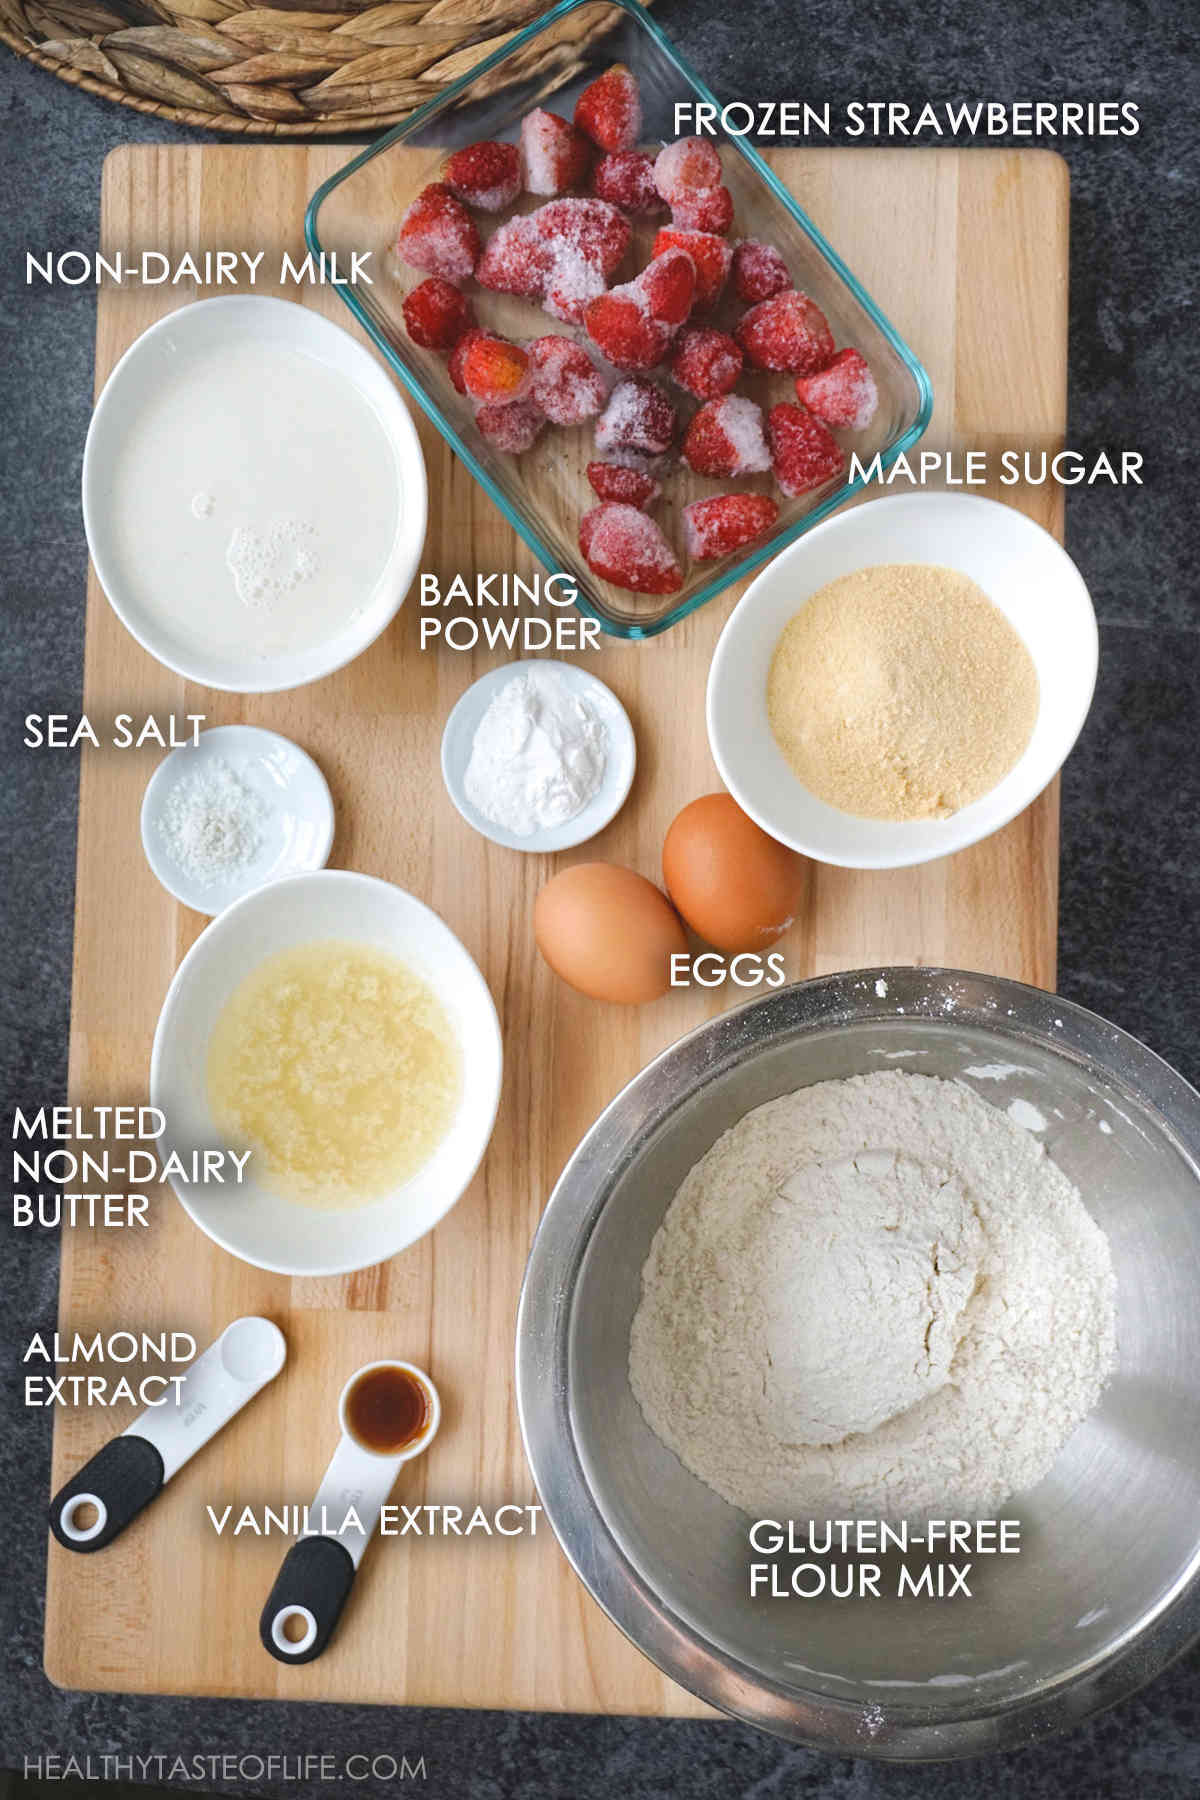 Ingredients for strawberry muffins displayed on a board.